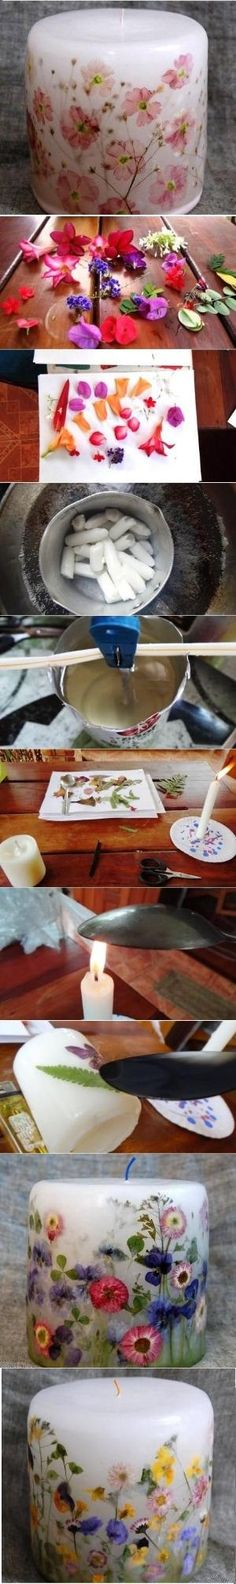 Candles Decorated With Dried Flowers by LiveLoveLaughMyLife